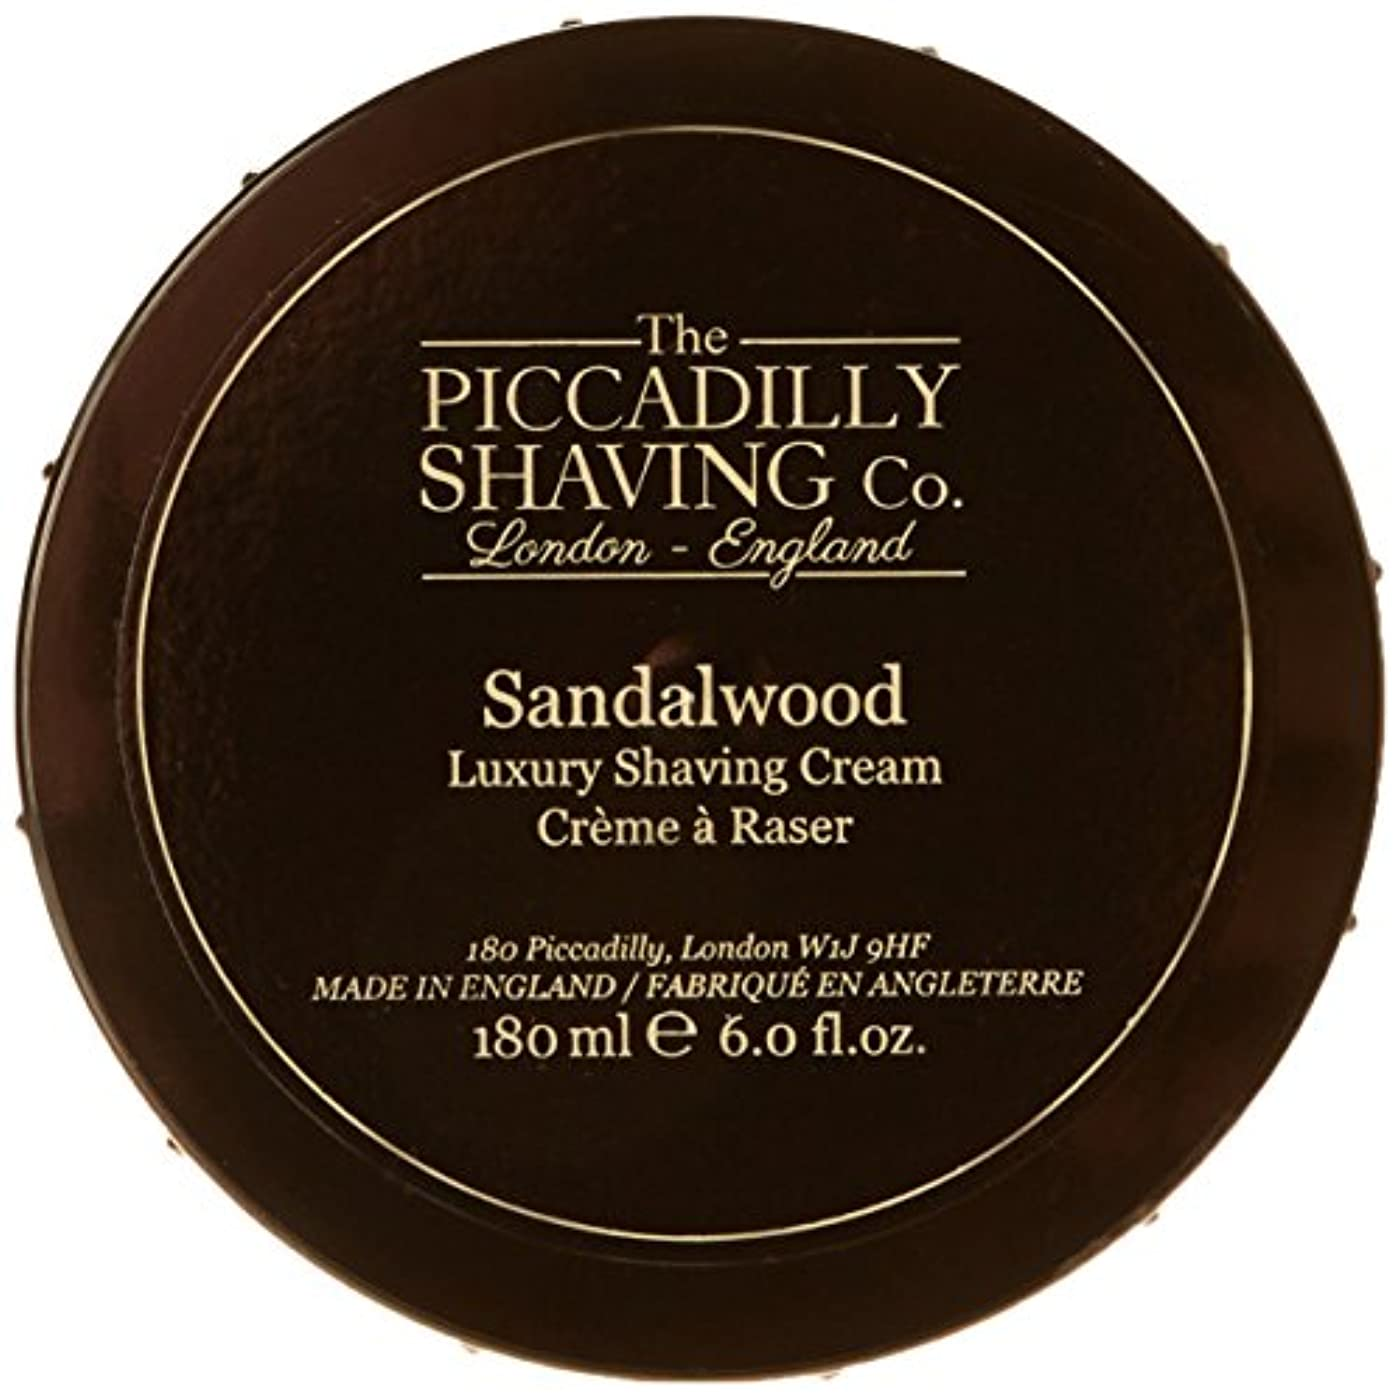 険しいはがき憲法Taylor Of Old Bond Street The Piccadilly Shaving Co. Sandalwood Luxury Shaving Cream 180g/6oz並行輸入品